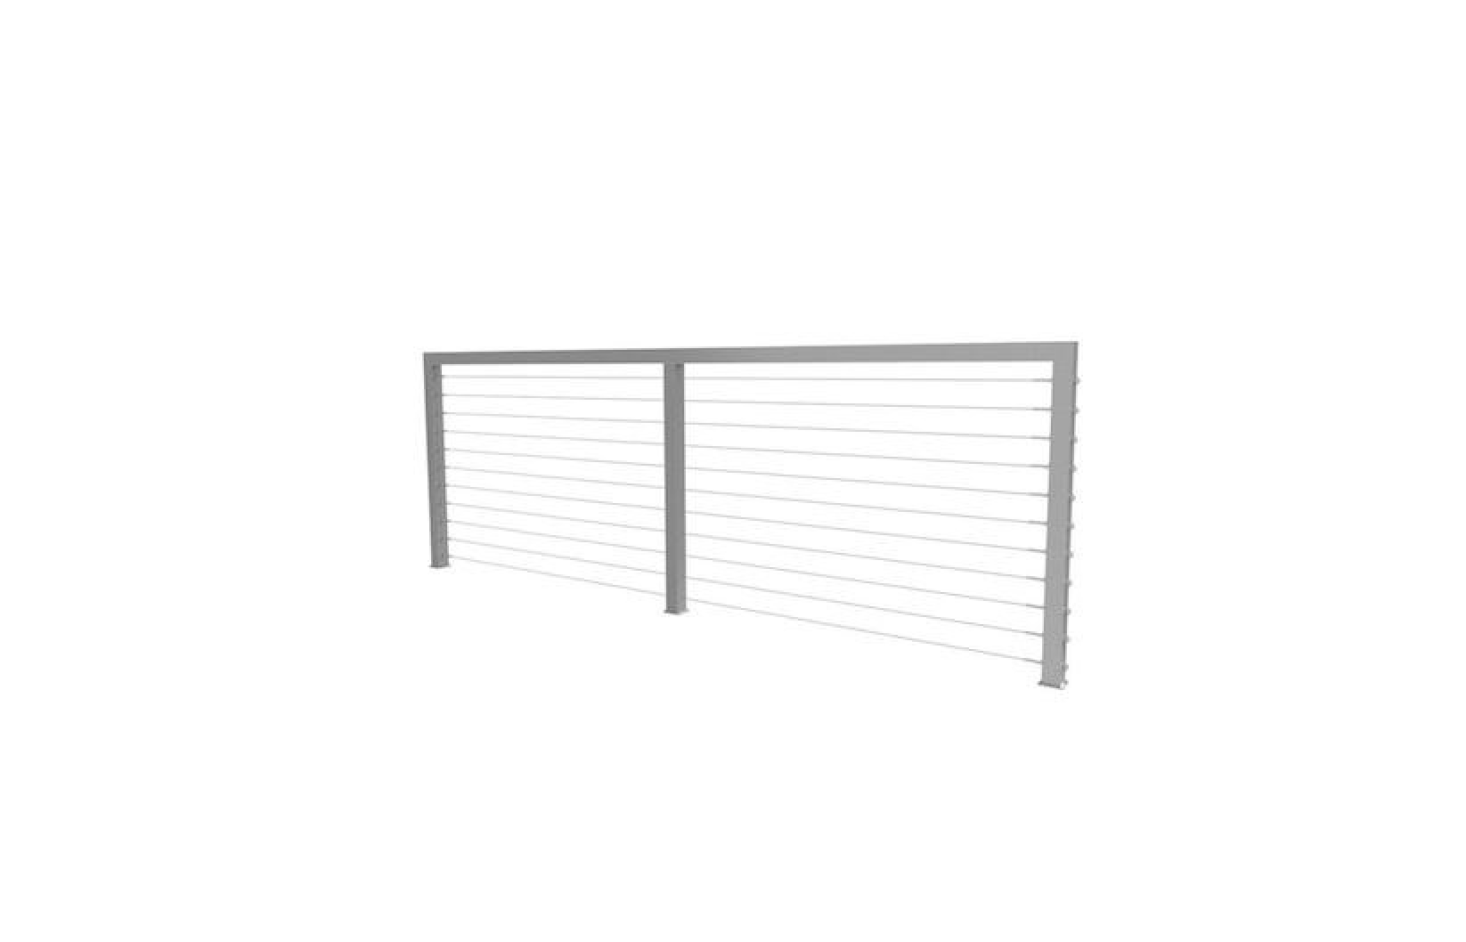 10 Easy Pieces: Cable Railing Kits - Gardenista